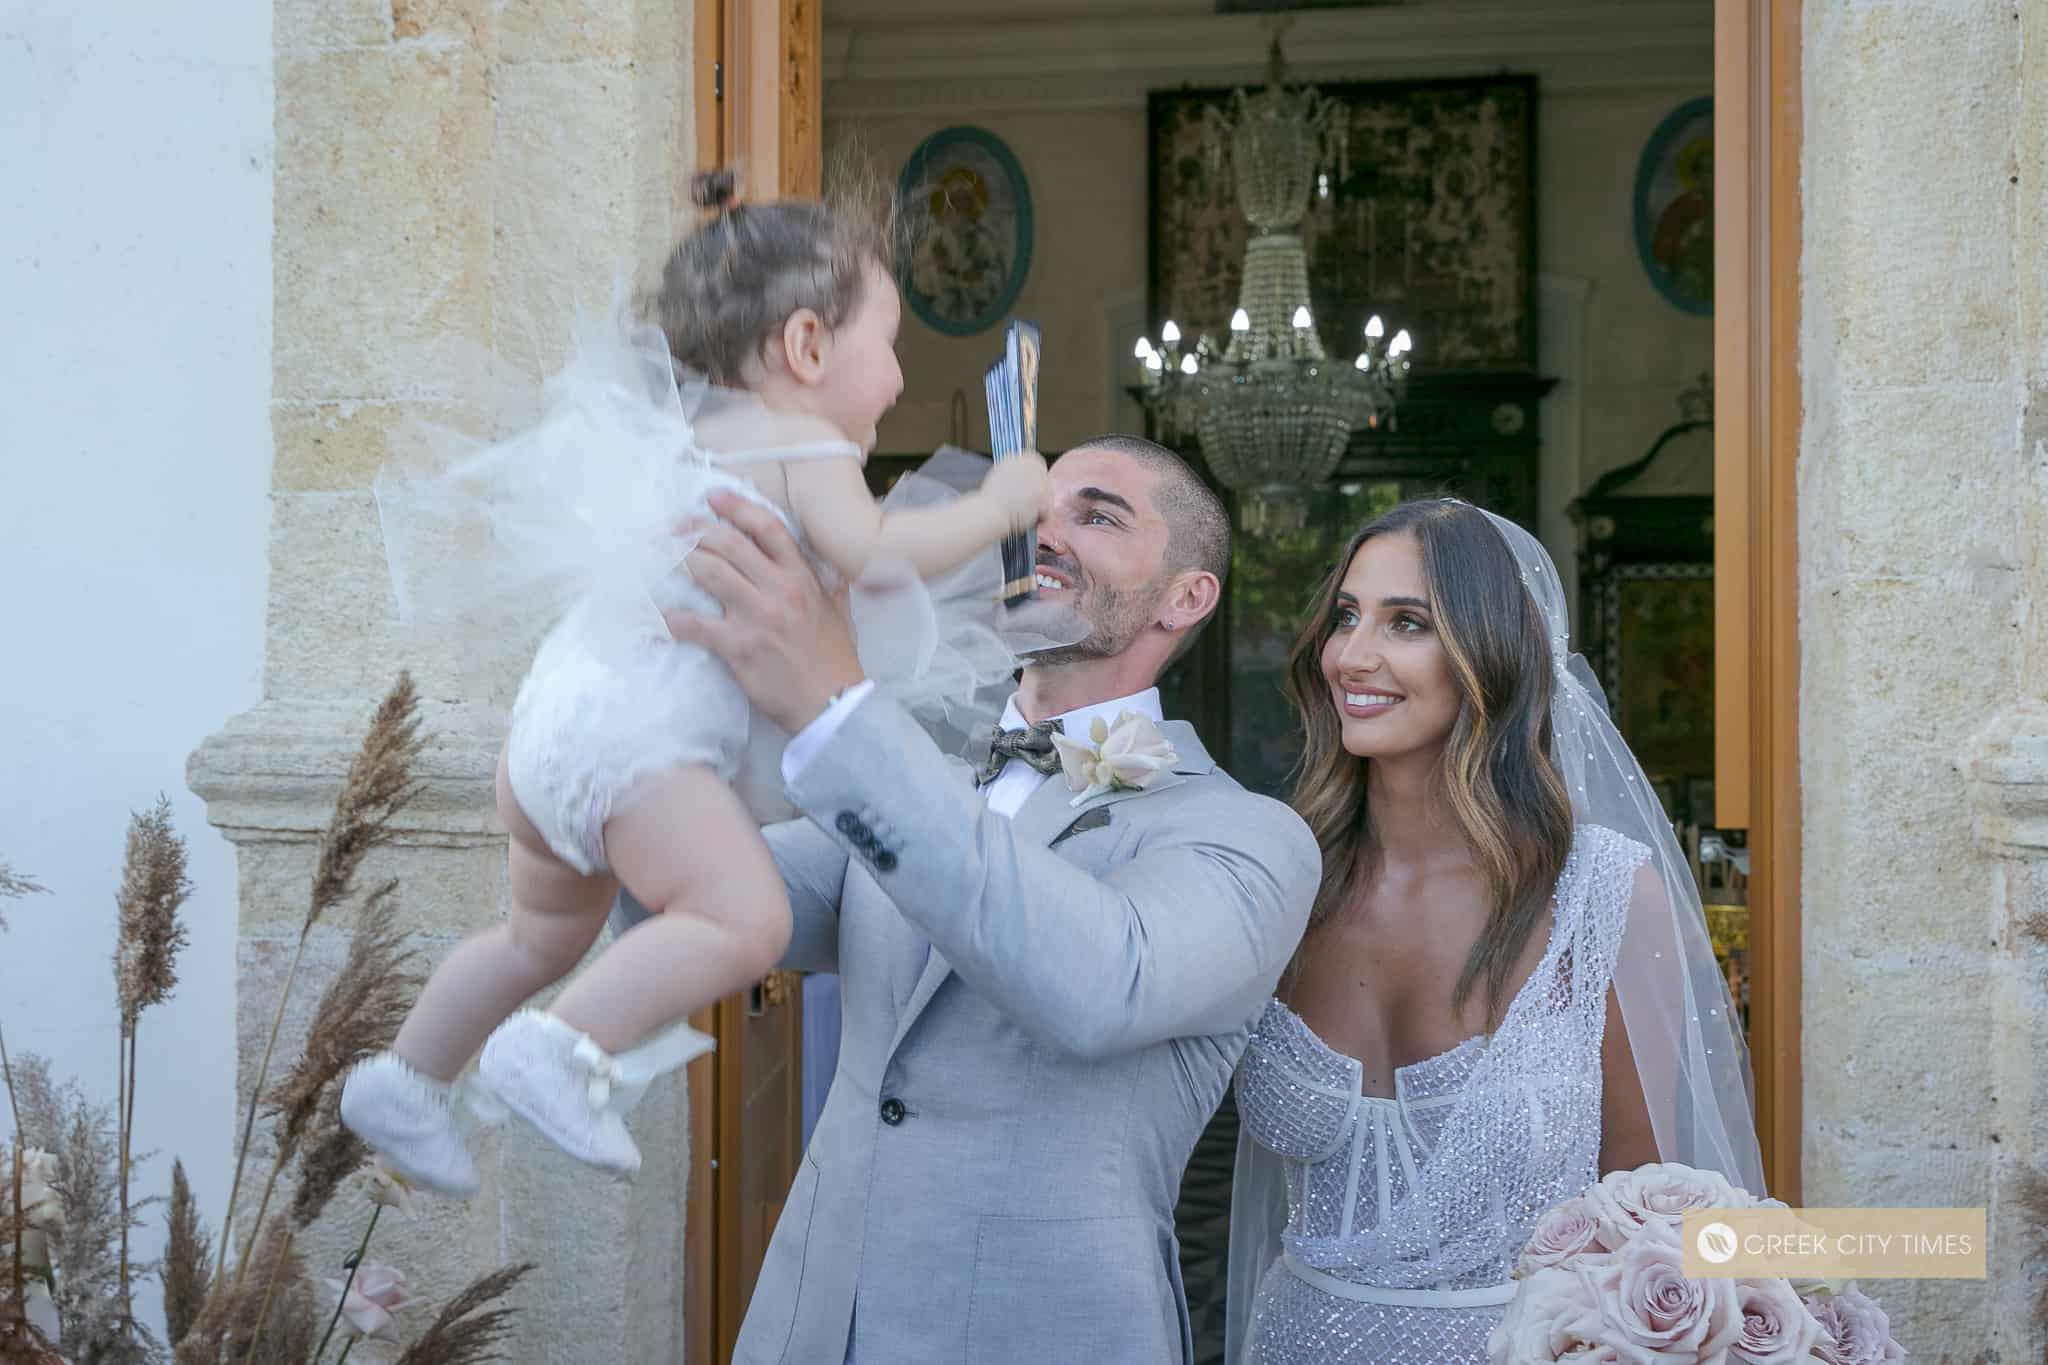 GCT Exclusive: Sparks Fly on the 4th July for Sabo Skirt's Thessy & Husband Georgio 19